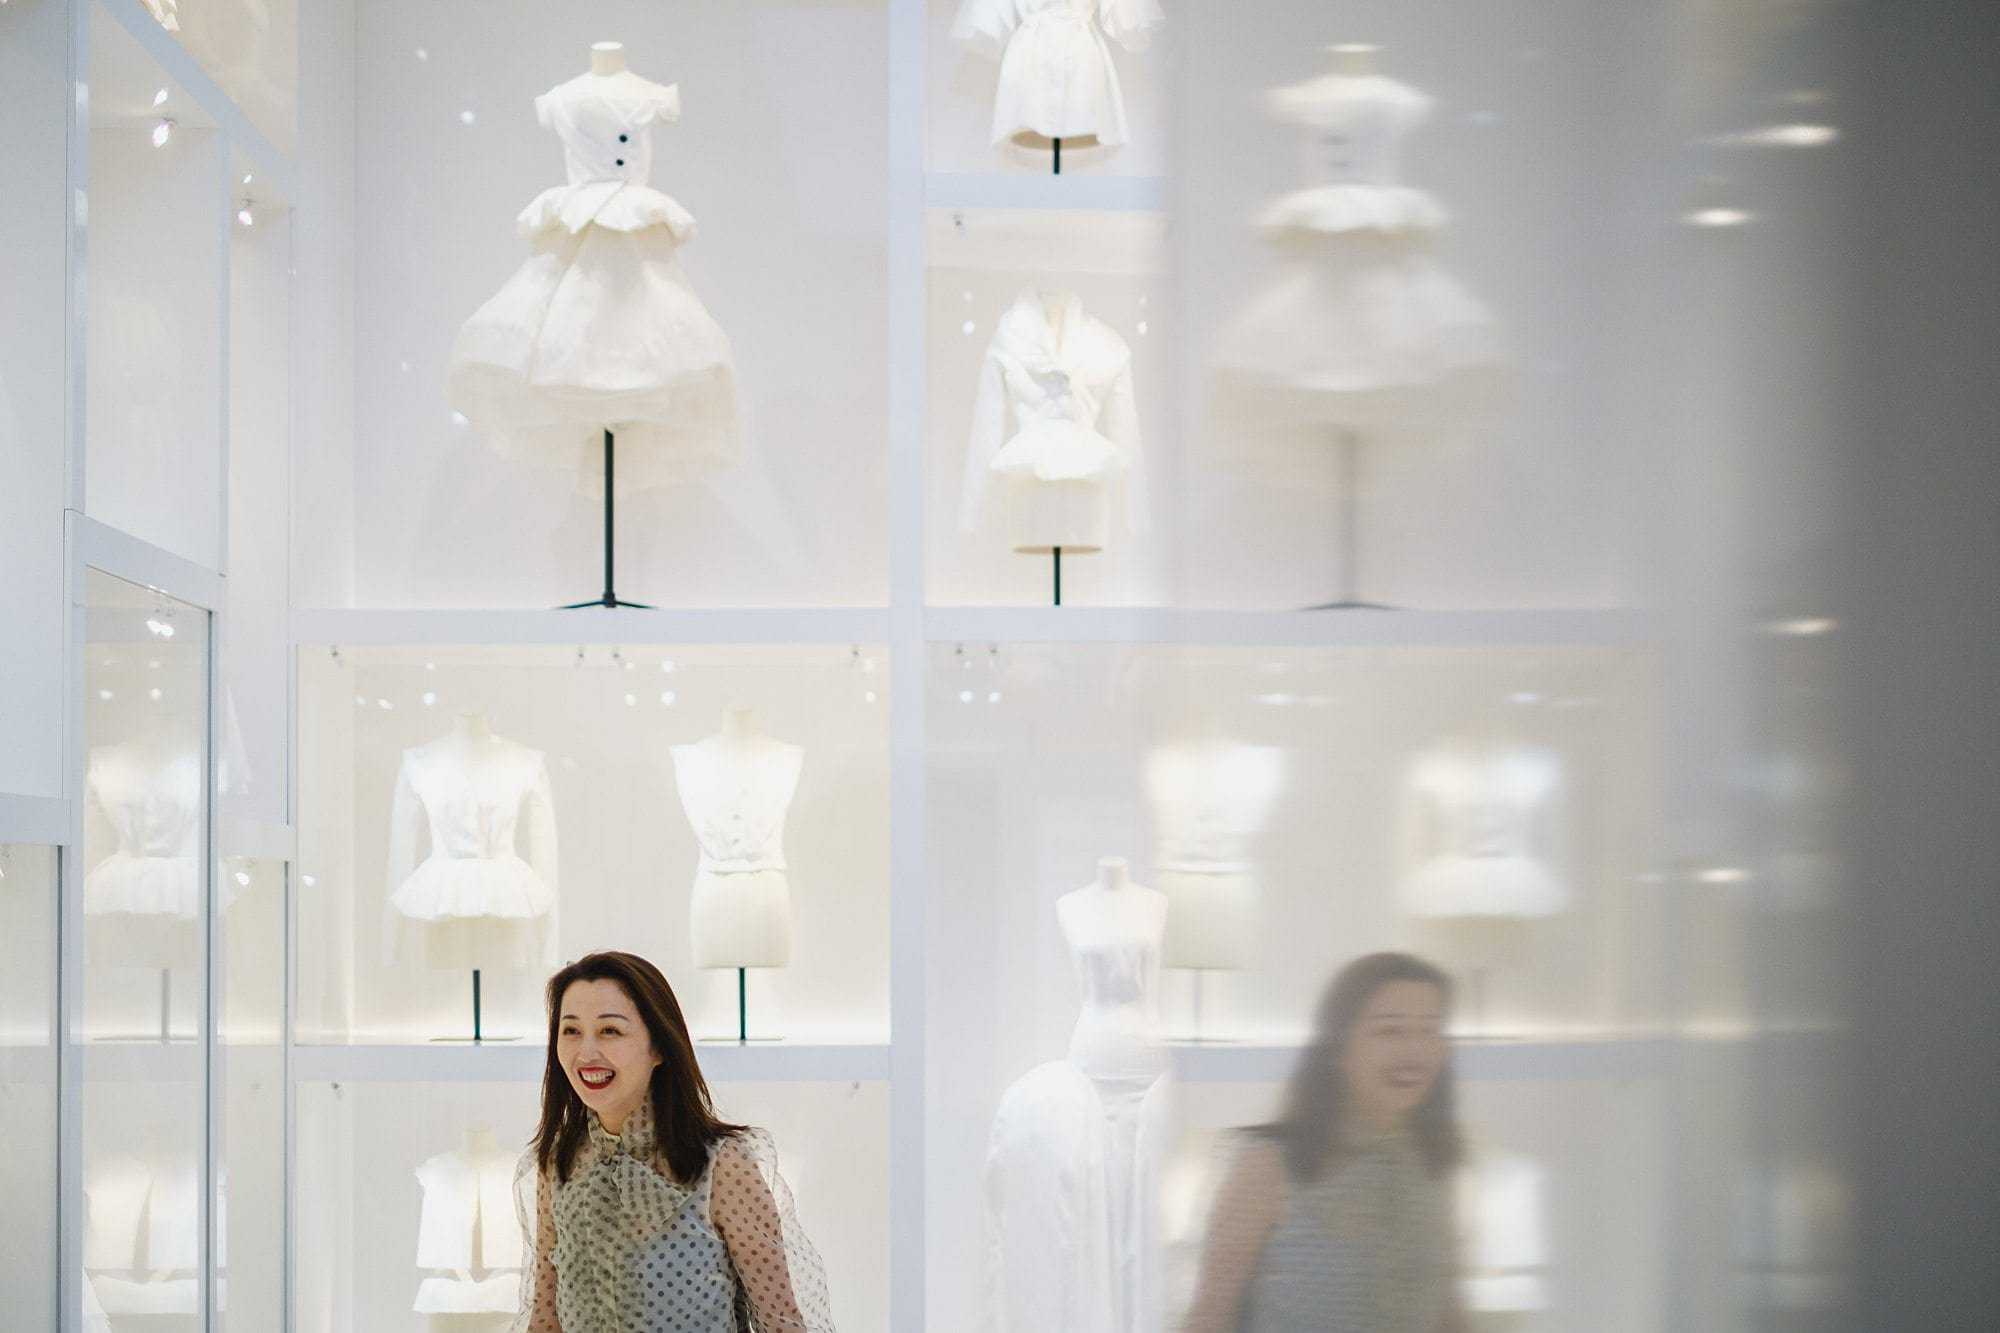 victoria albert event photographer london 052 - The Christian Dior Exhibition at the V&A